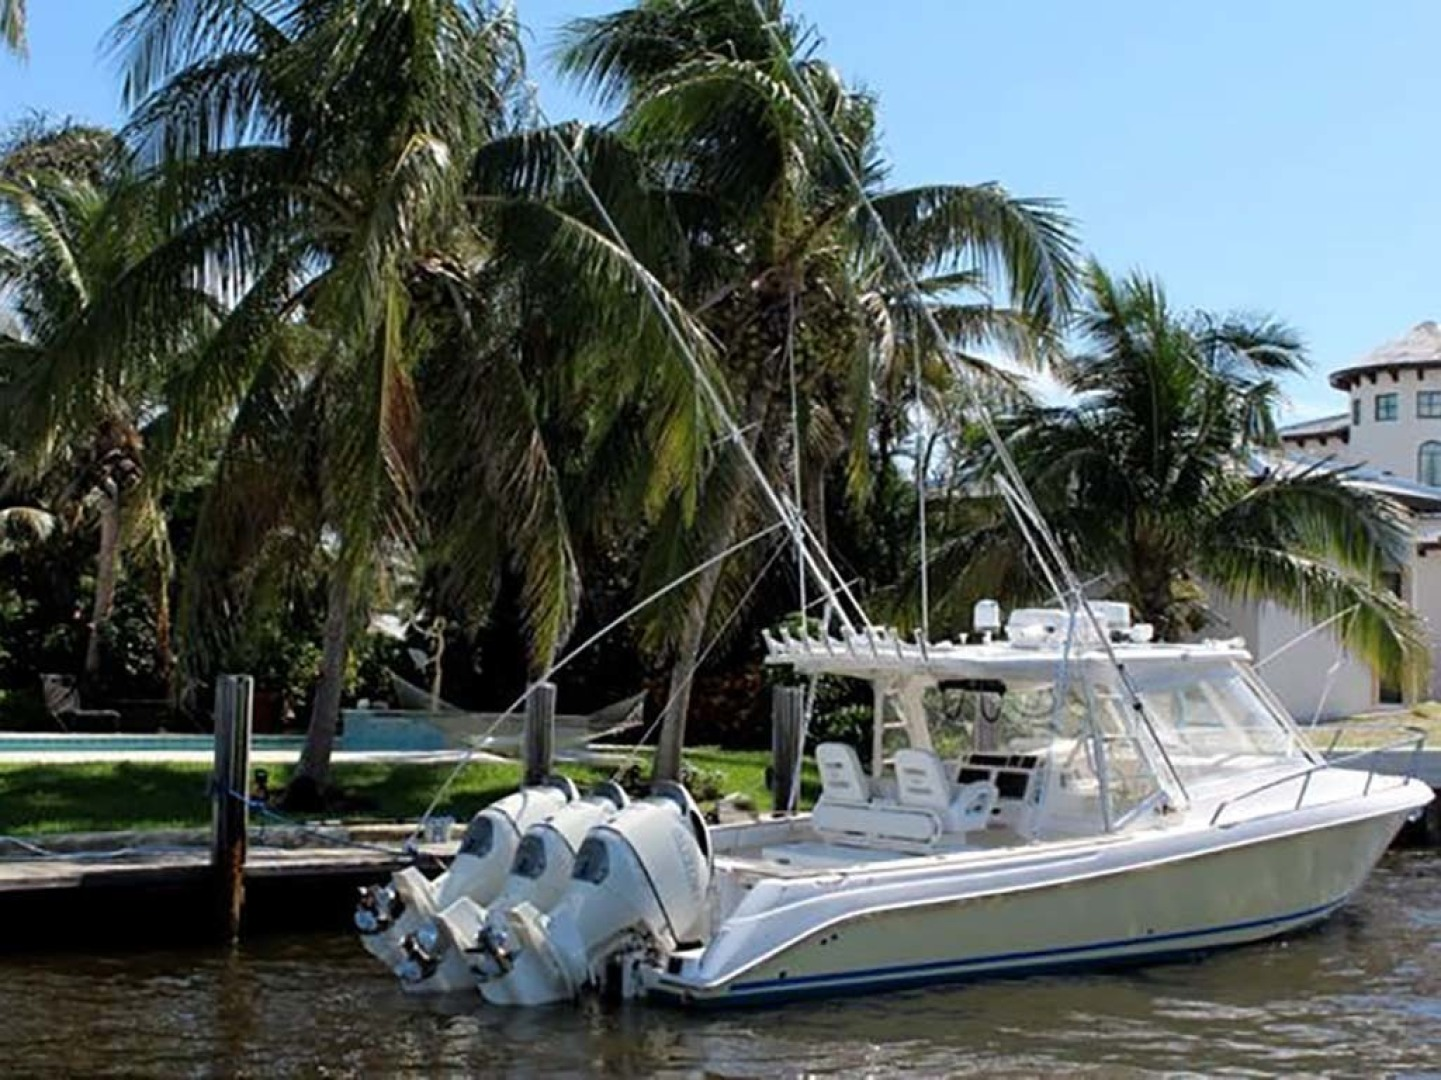 Everglades-350 LX 2010-Off The Charts Hobe Sound-Florida-United States-Main Profile-1393611 | Thumbnail